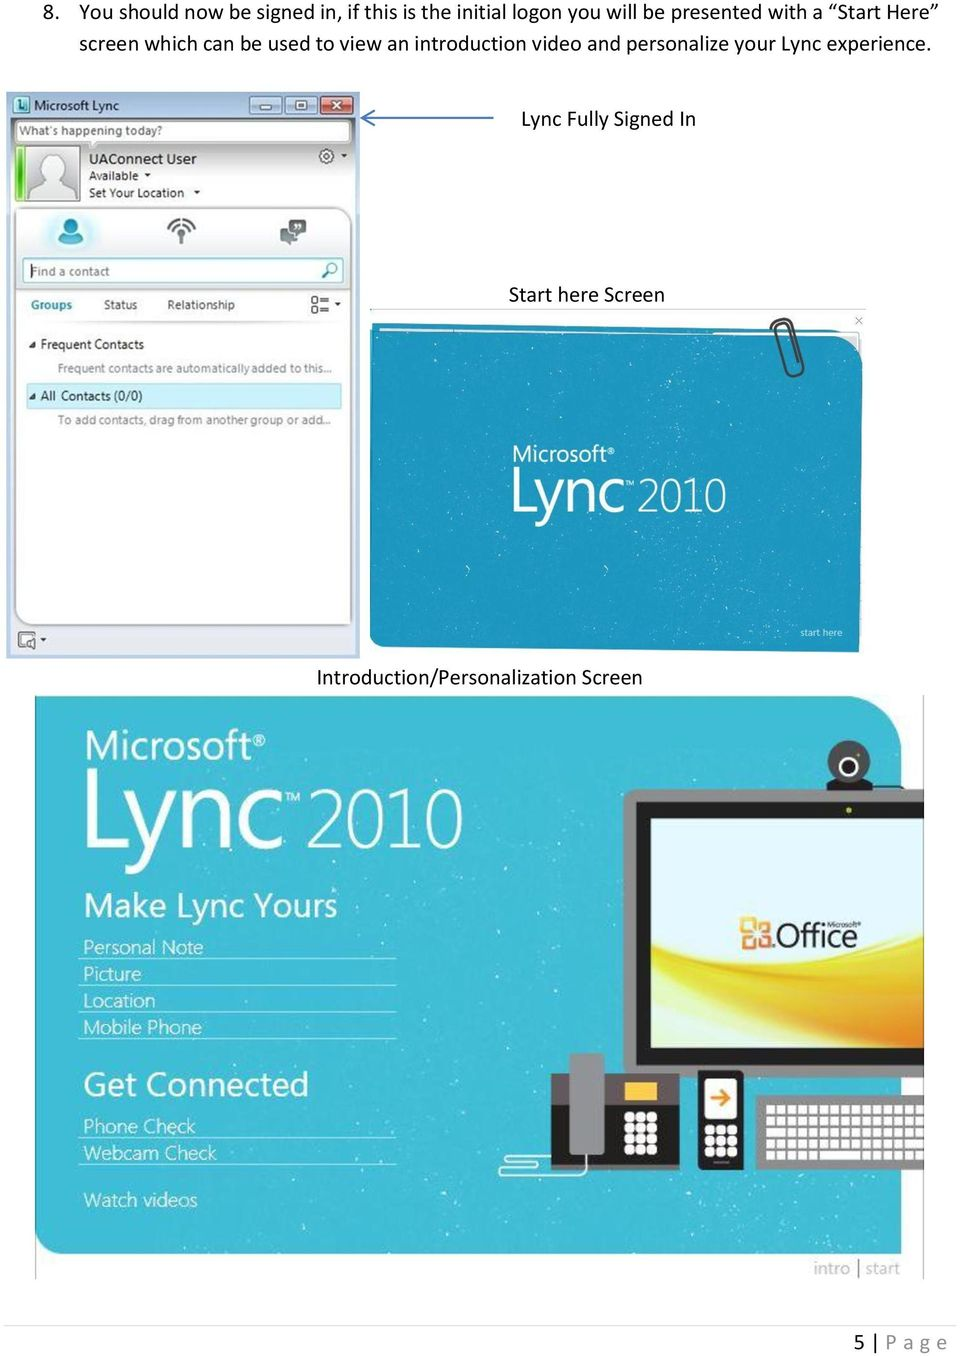 introduction video and personalize your Lync experience.